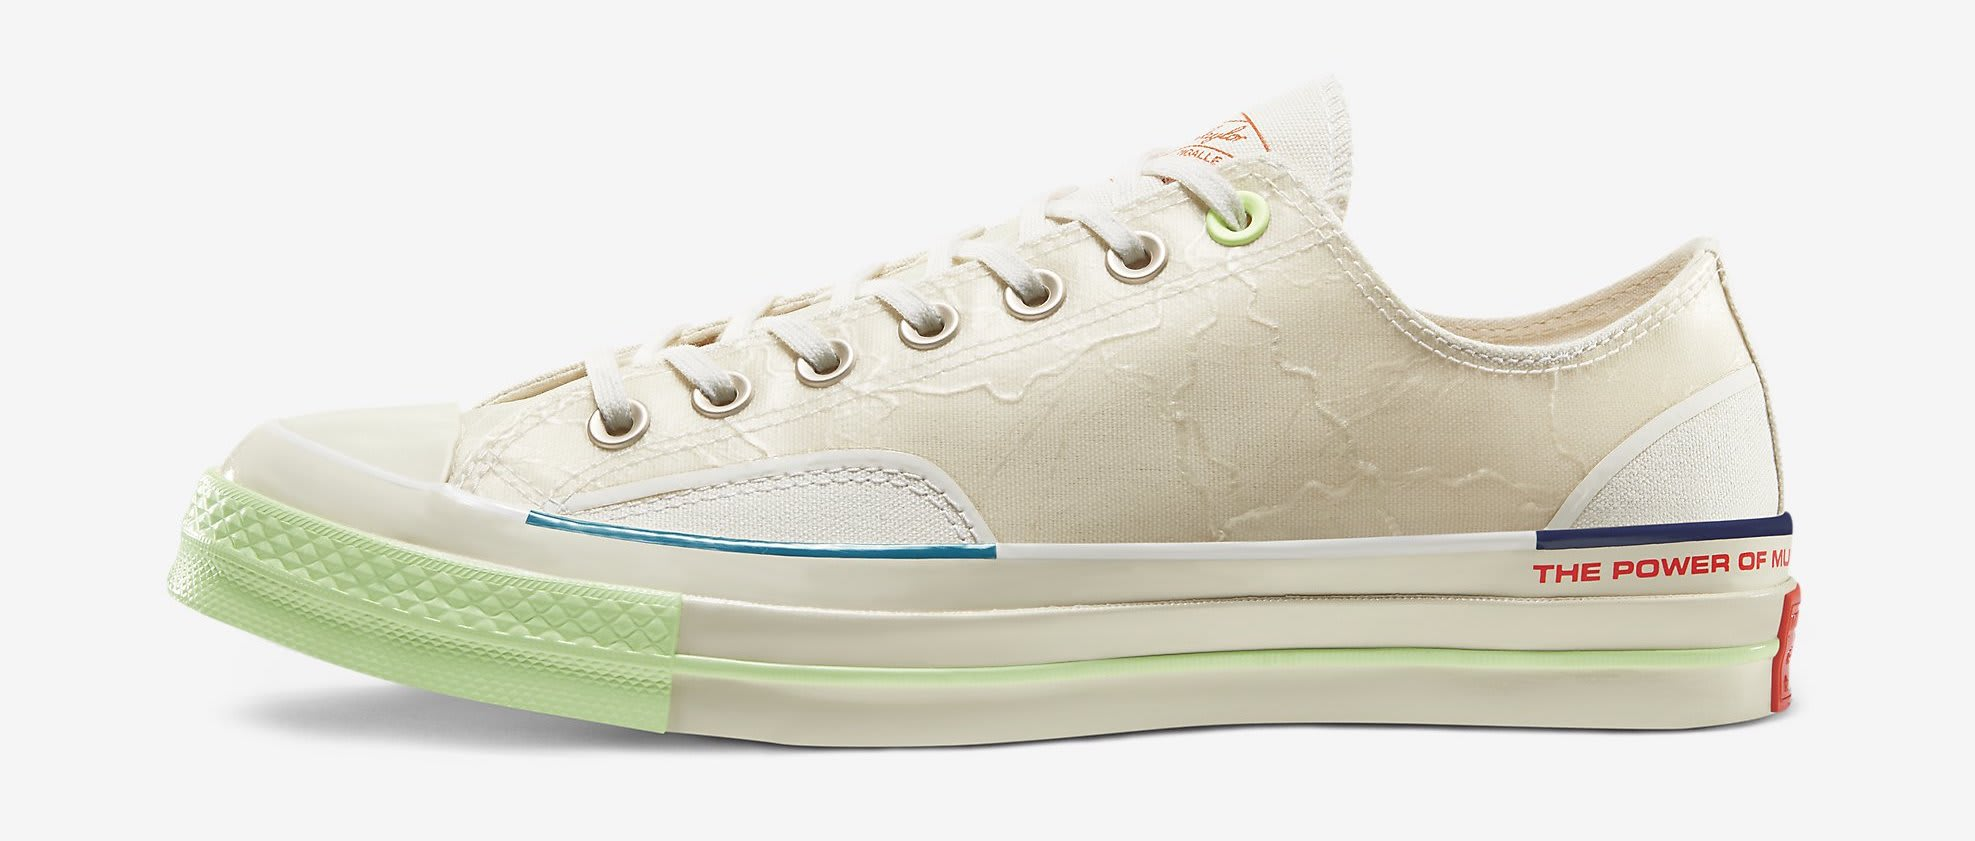 Pigalle x Converse Chuck 70 Ox 'White'